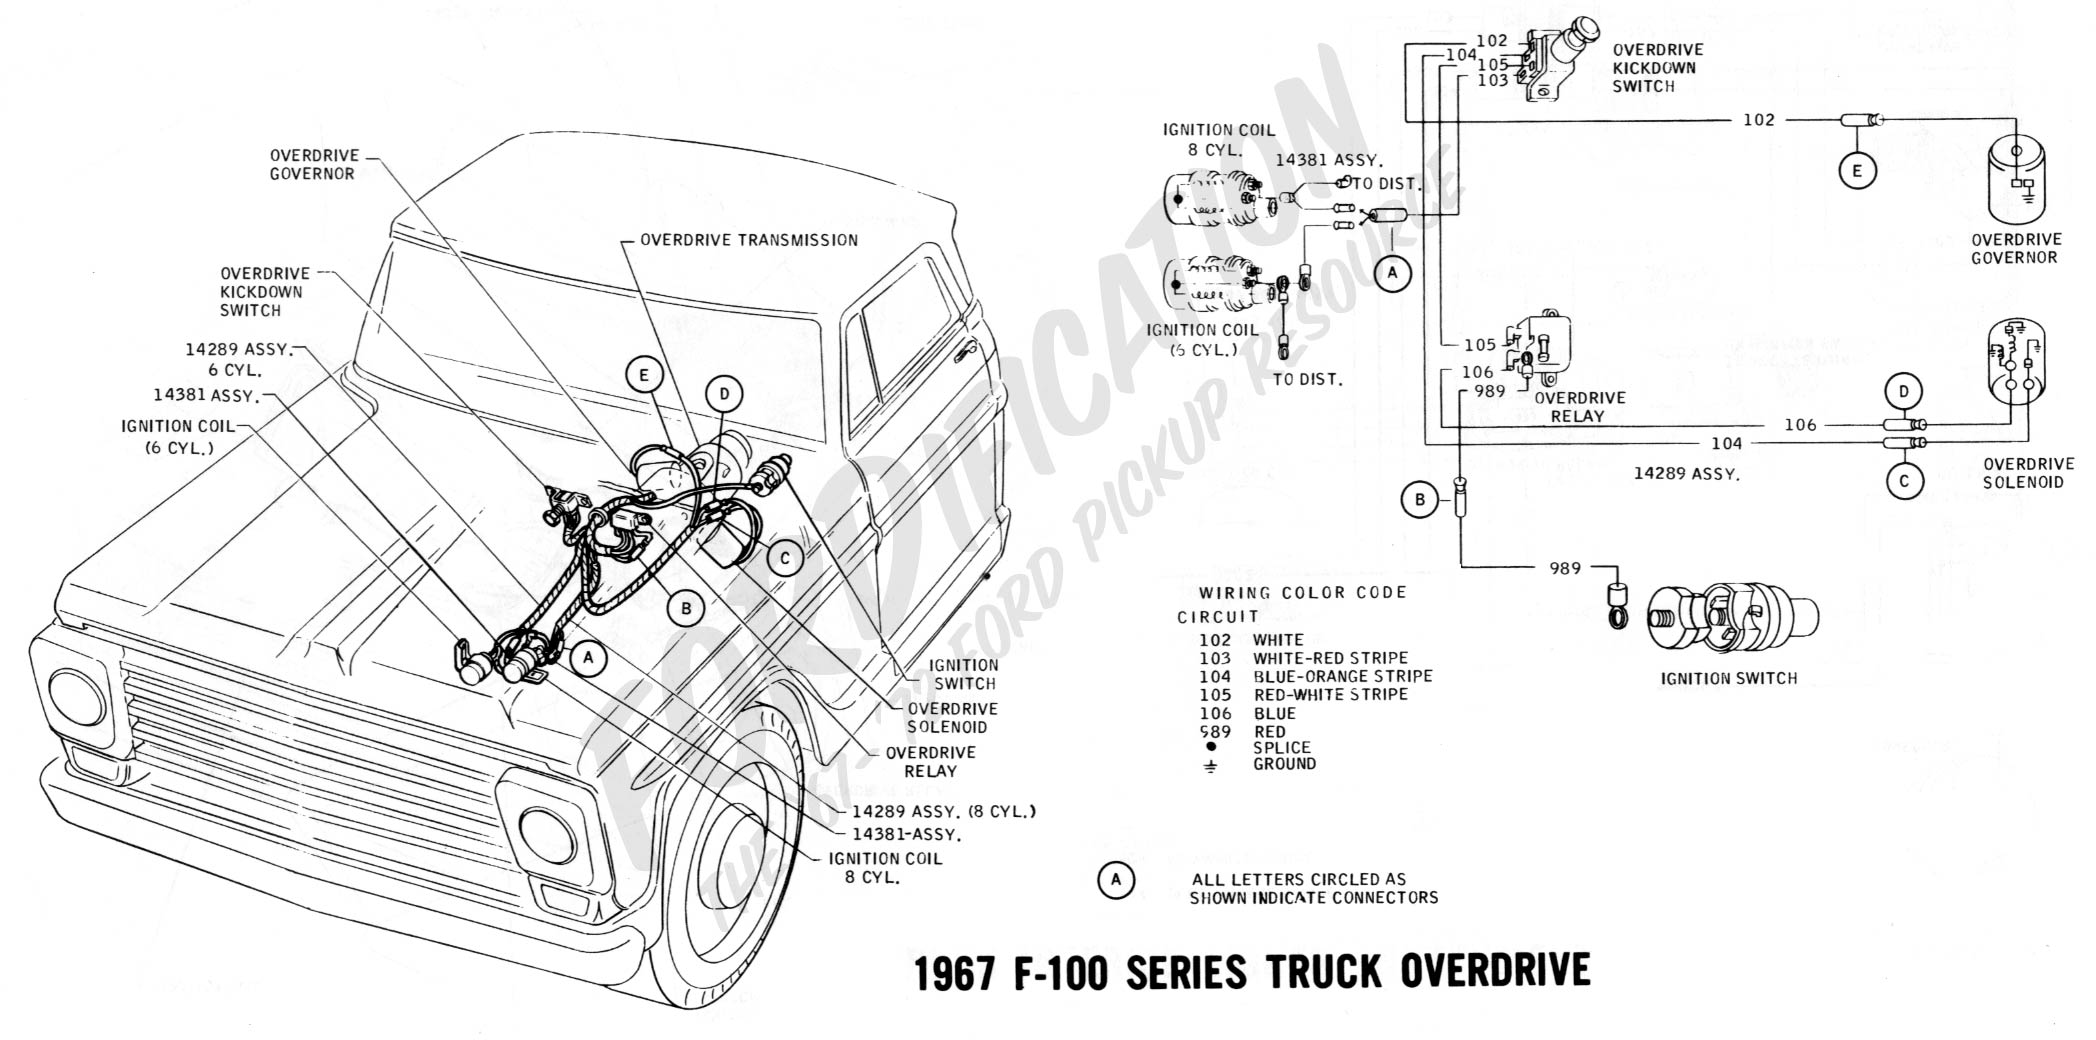 1971 Ford F100 Wiring Diagram Schematics 1972 Truck Diagrams Free Technical Drawings And Section H 1967 F